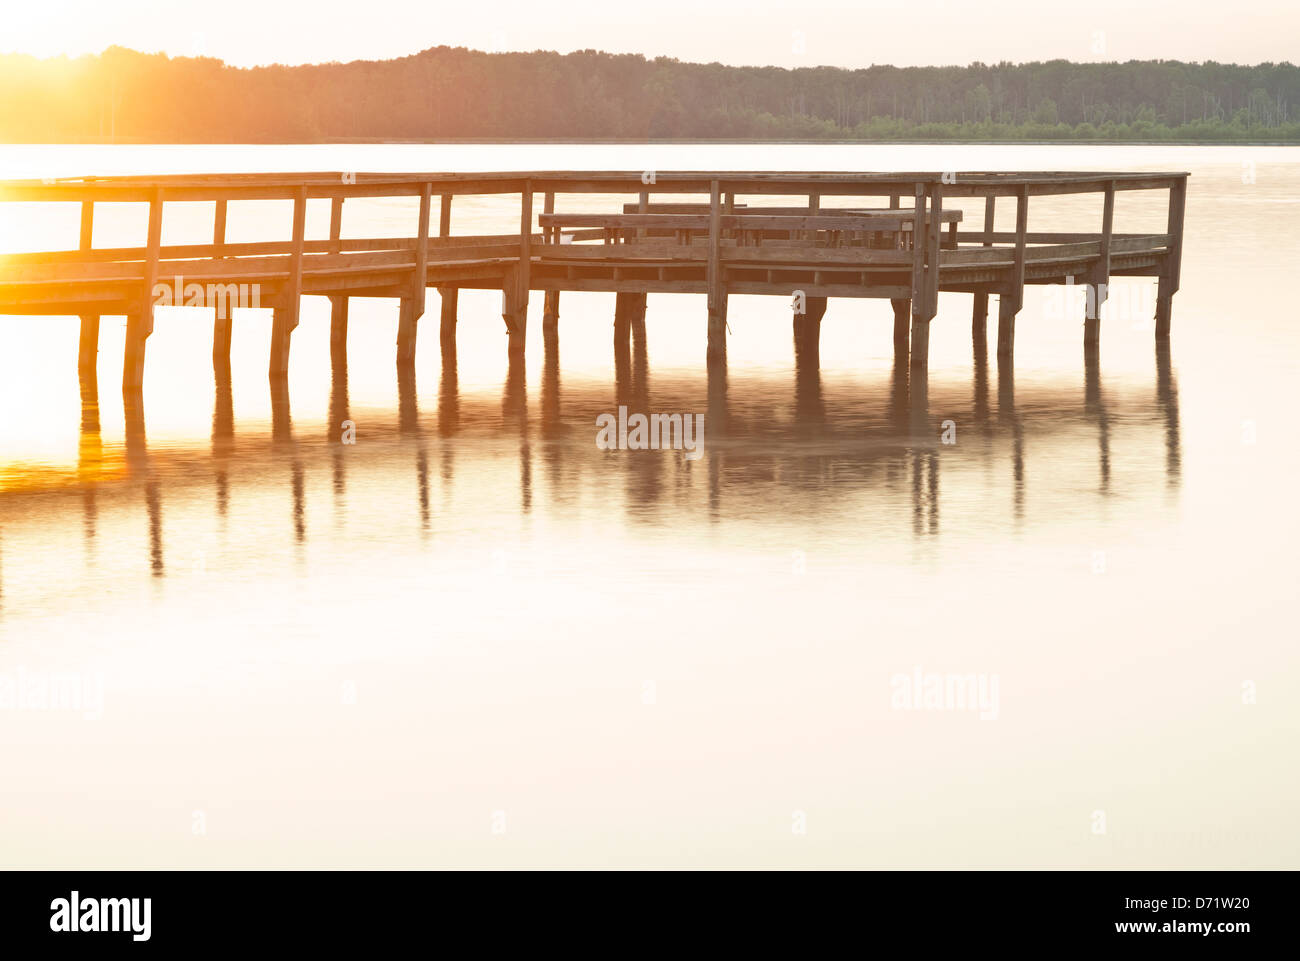 Hot afternoon on Pickthorne Lake, Cabot, AR - Stock Image